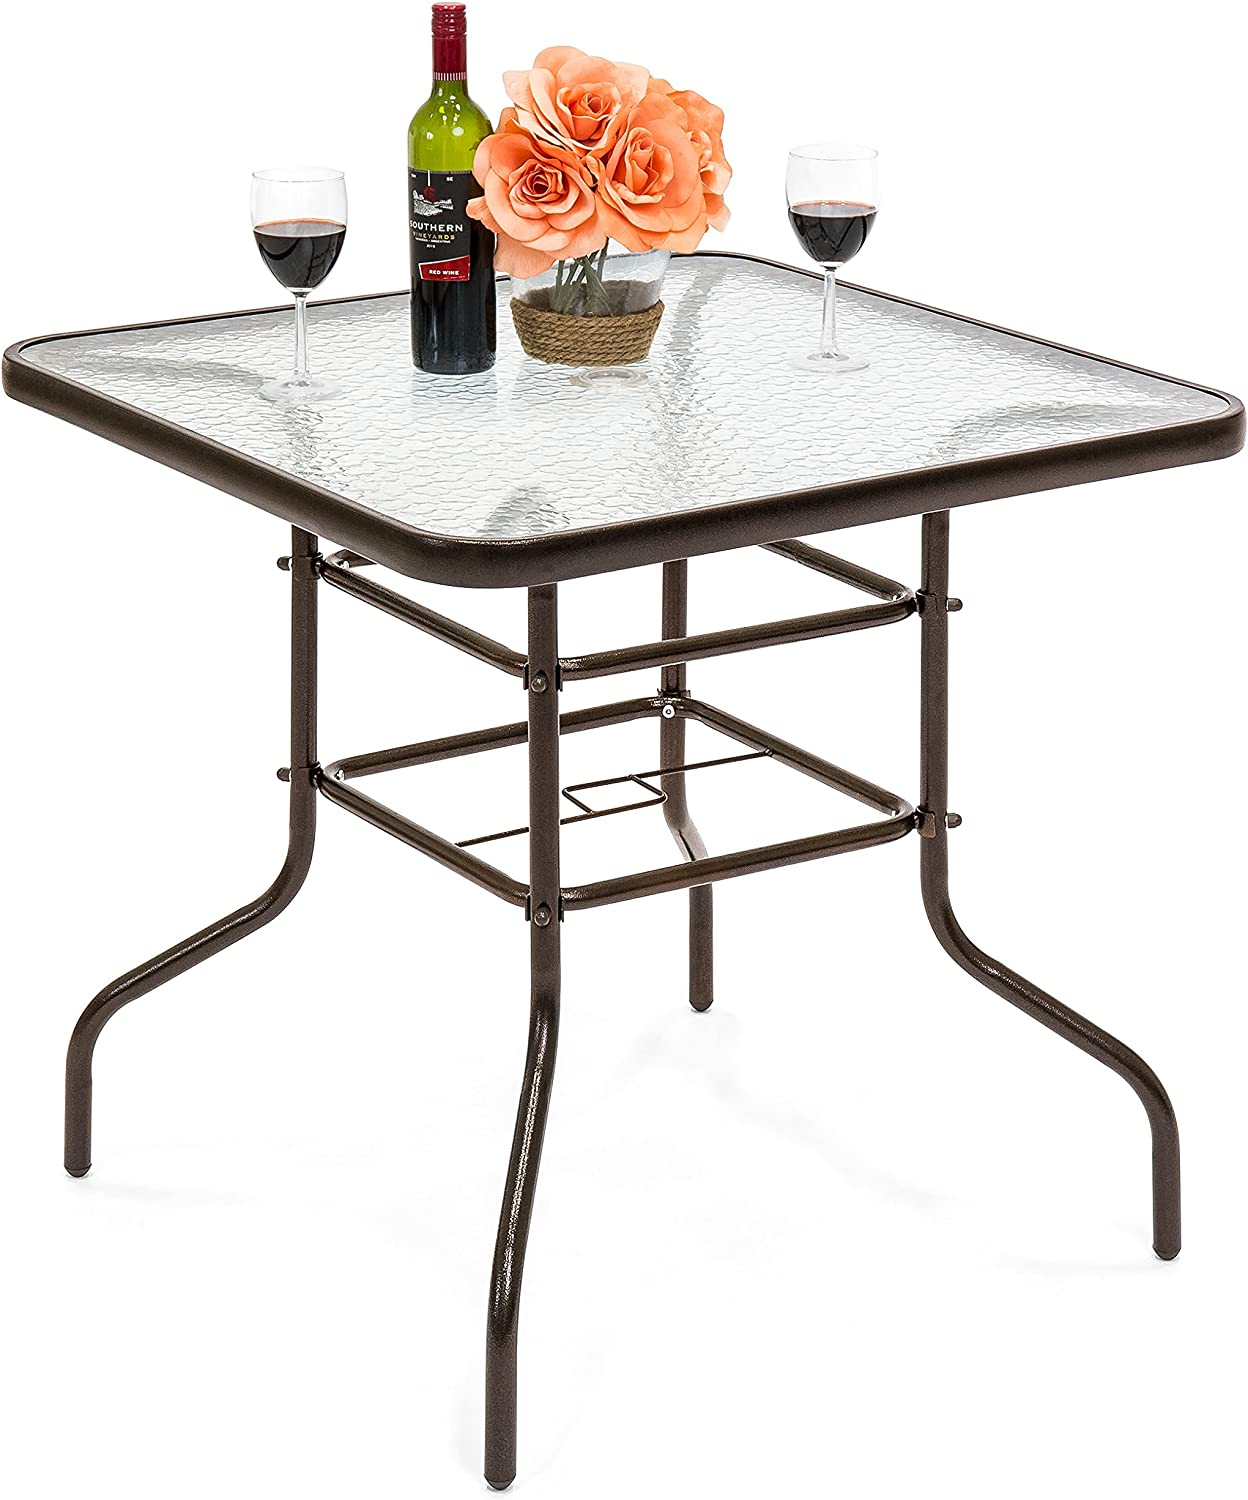 Best Choice Products 32in Square Tempered Glass Outdoor Patio Dining Bistro Table w/Umbrella Hole, Steel Frame, Easy Assembly : Patio, Lawn & Garden